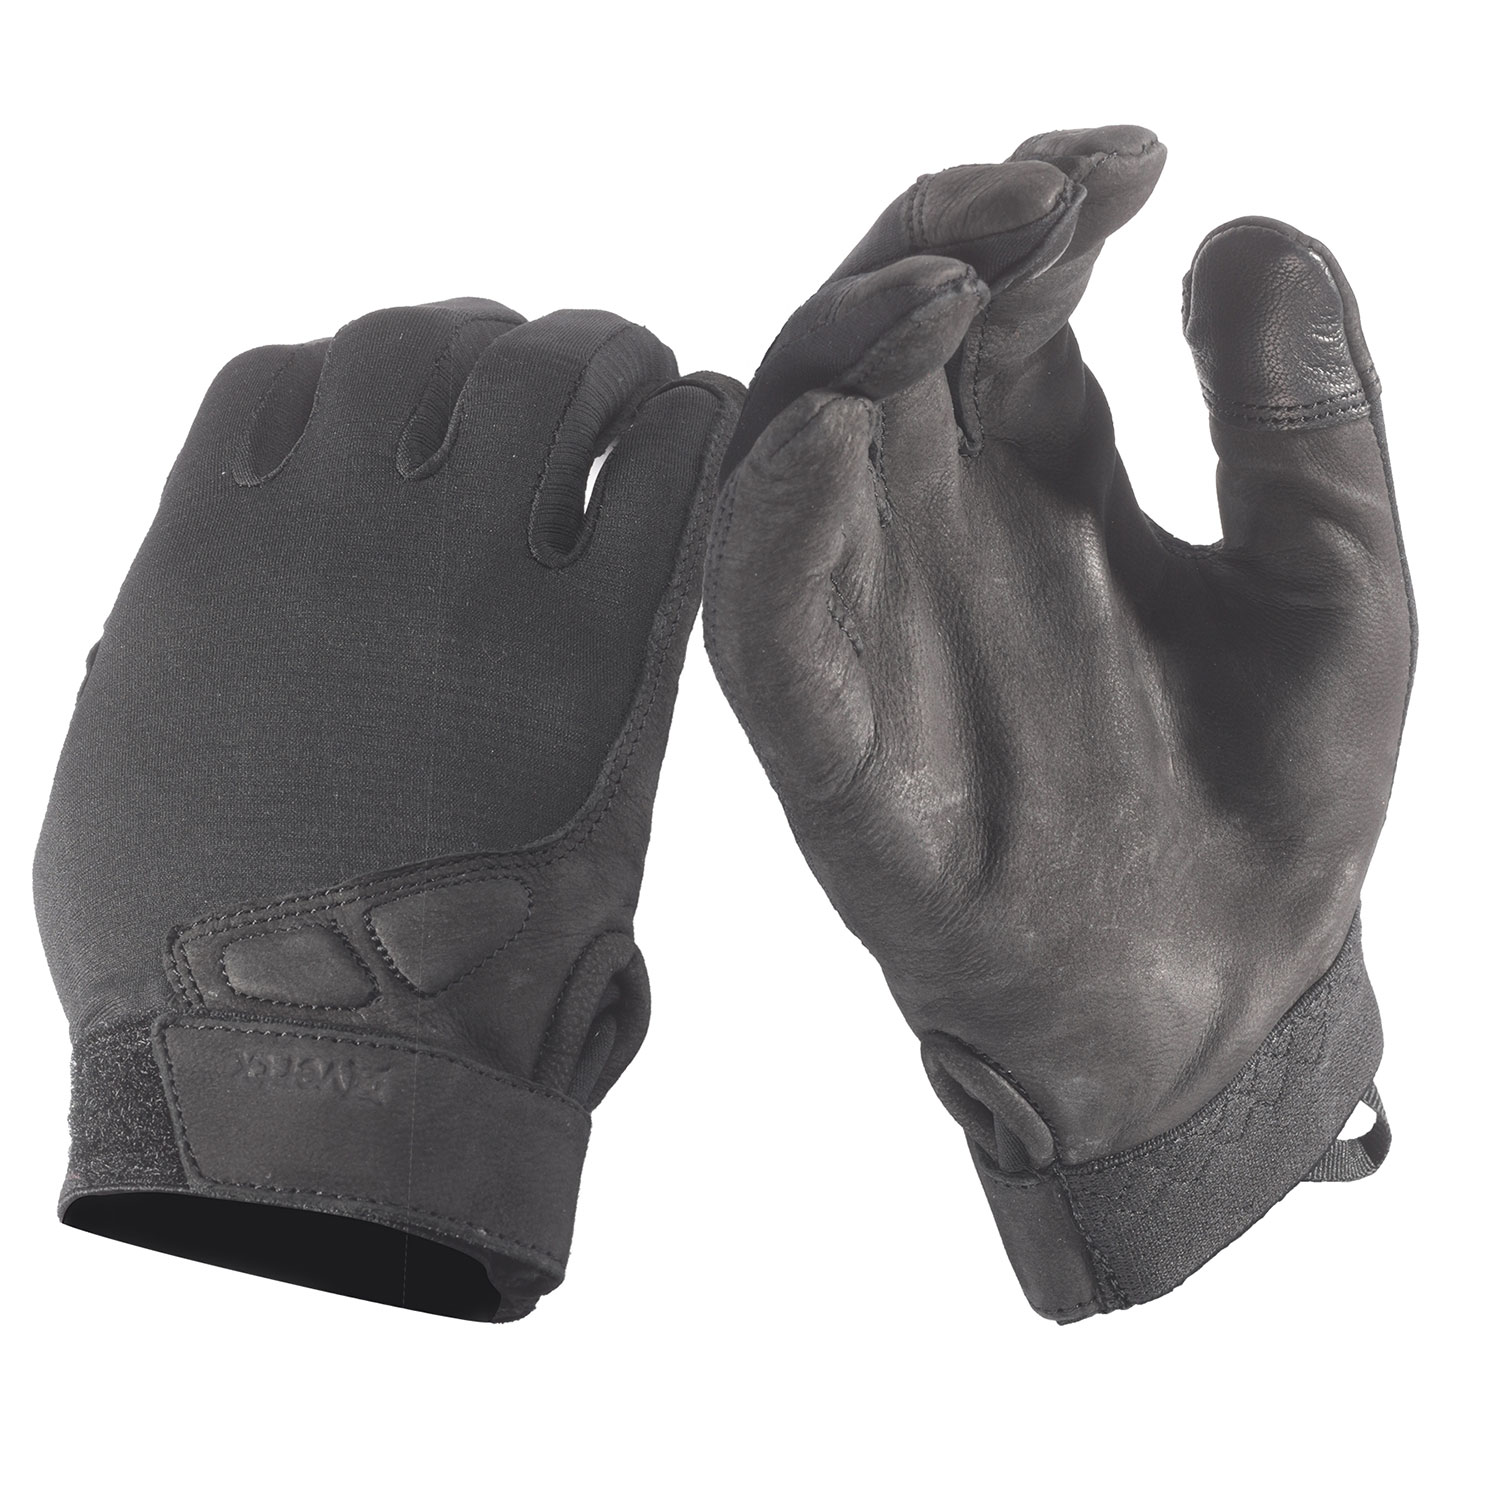 Vertx VaporCore Shooter Gloves